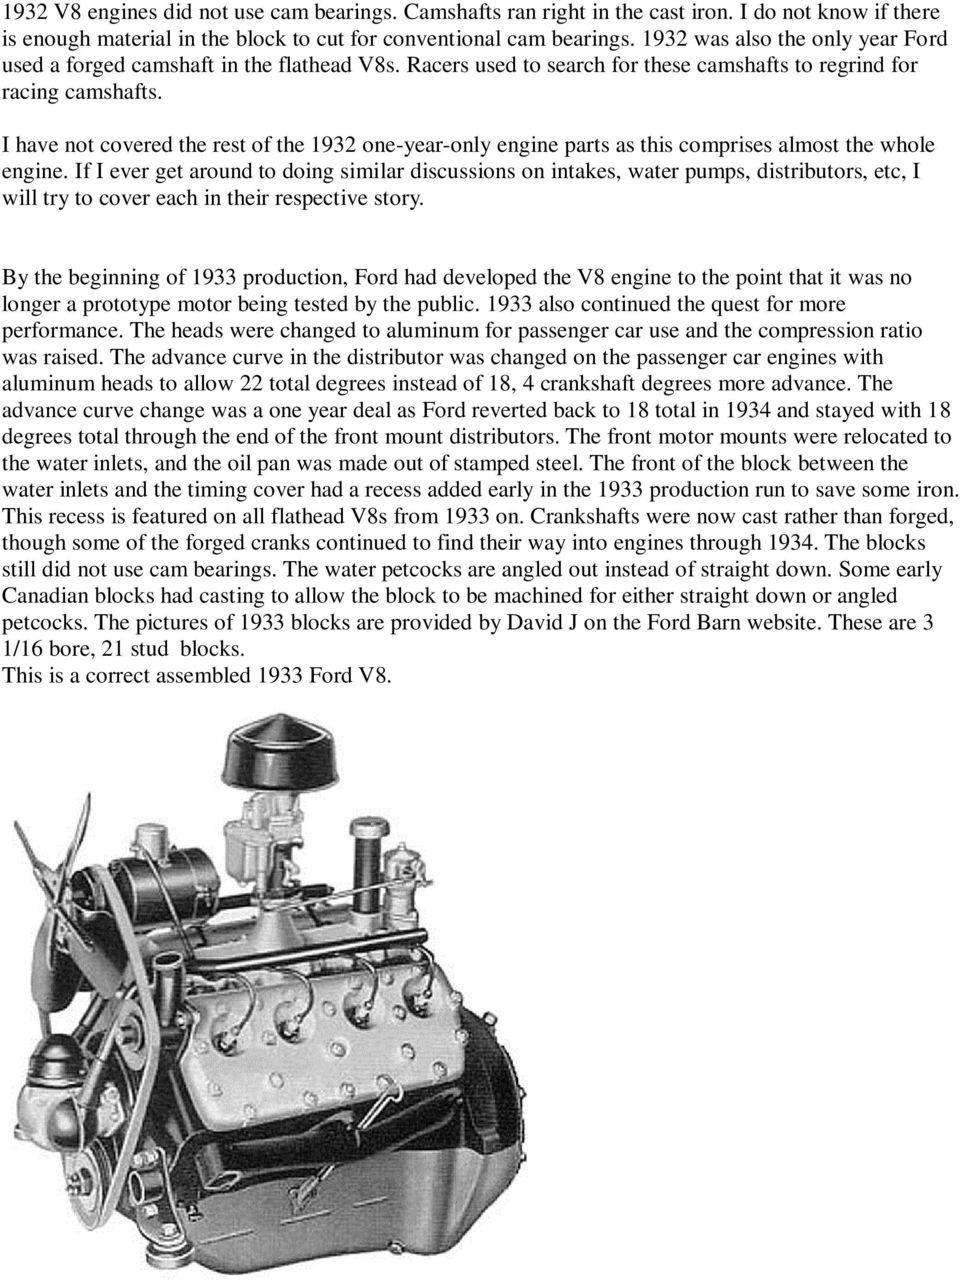 medium resolution of i have not covered the rest of the 1932 one year only engine parts